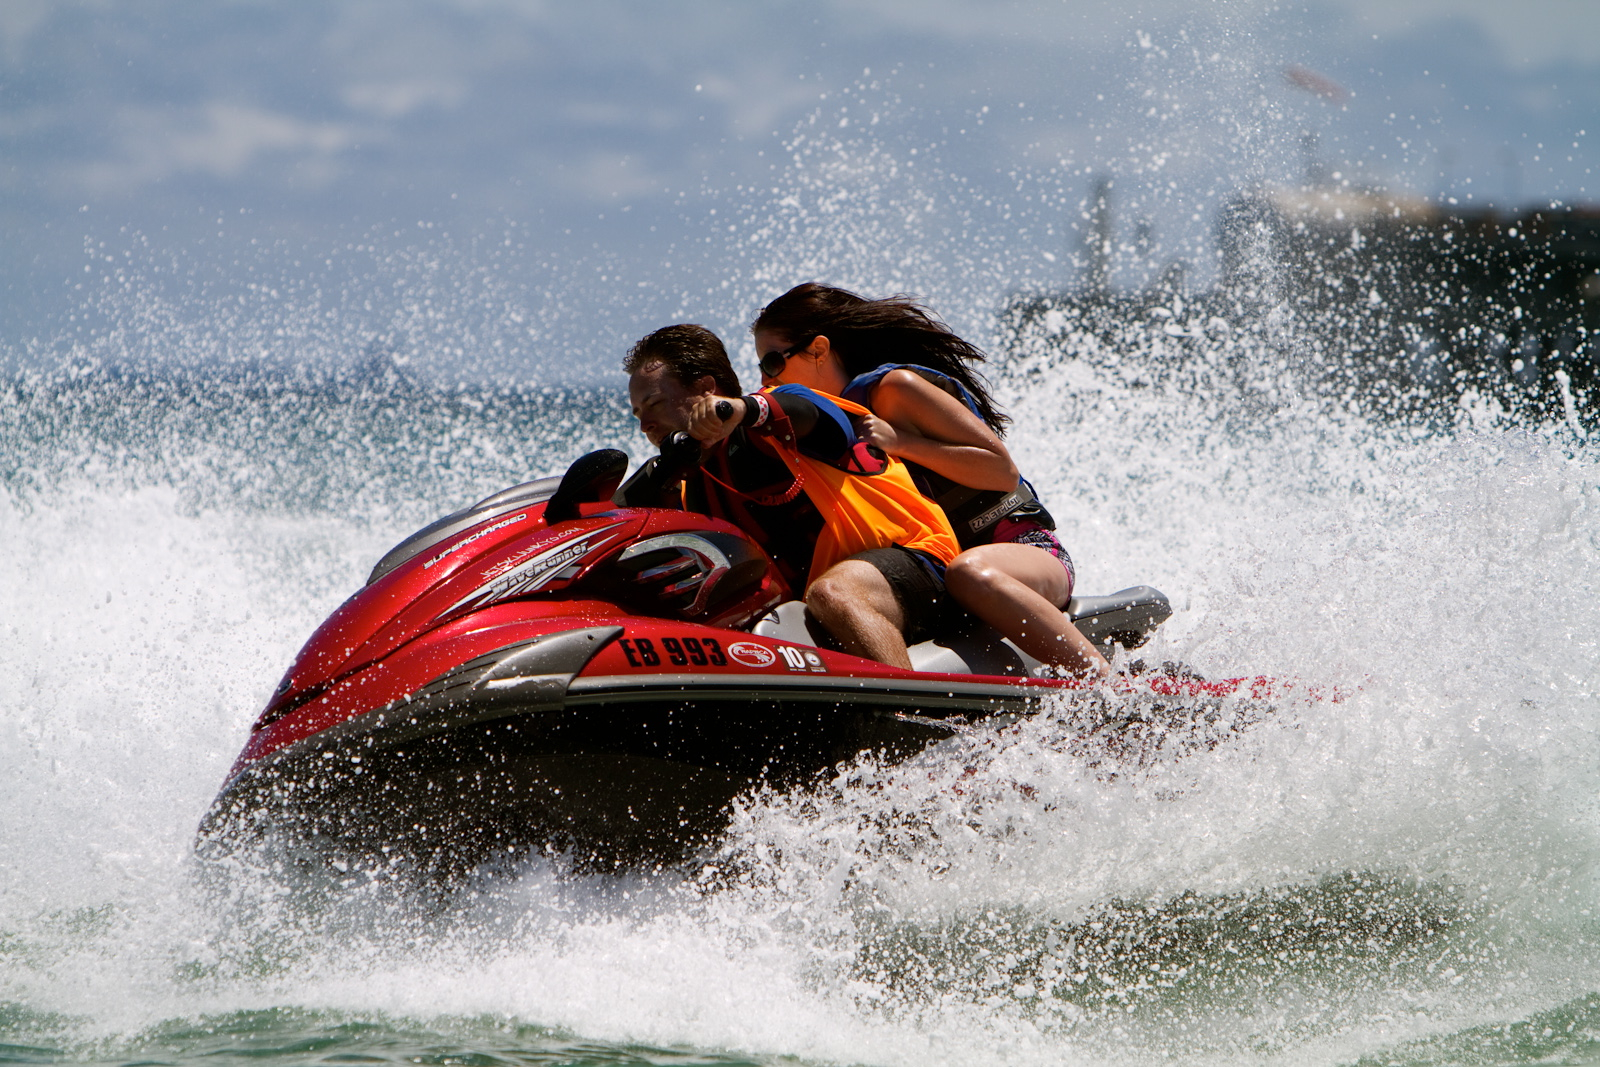 Jetski. Pic: https://www.flickr.com/photos/kitta/